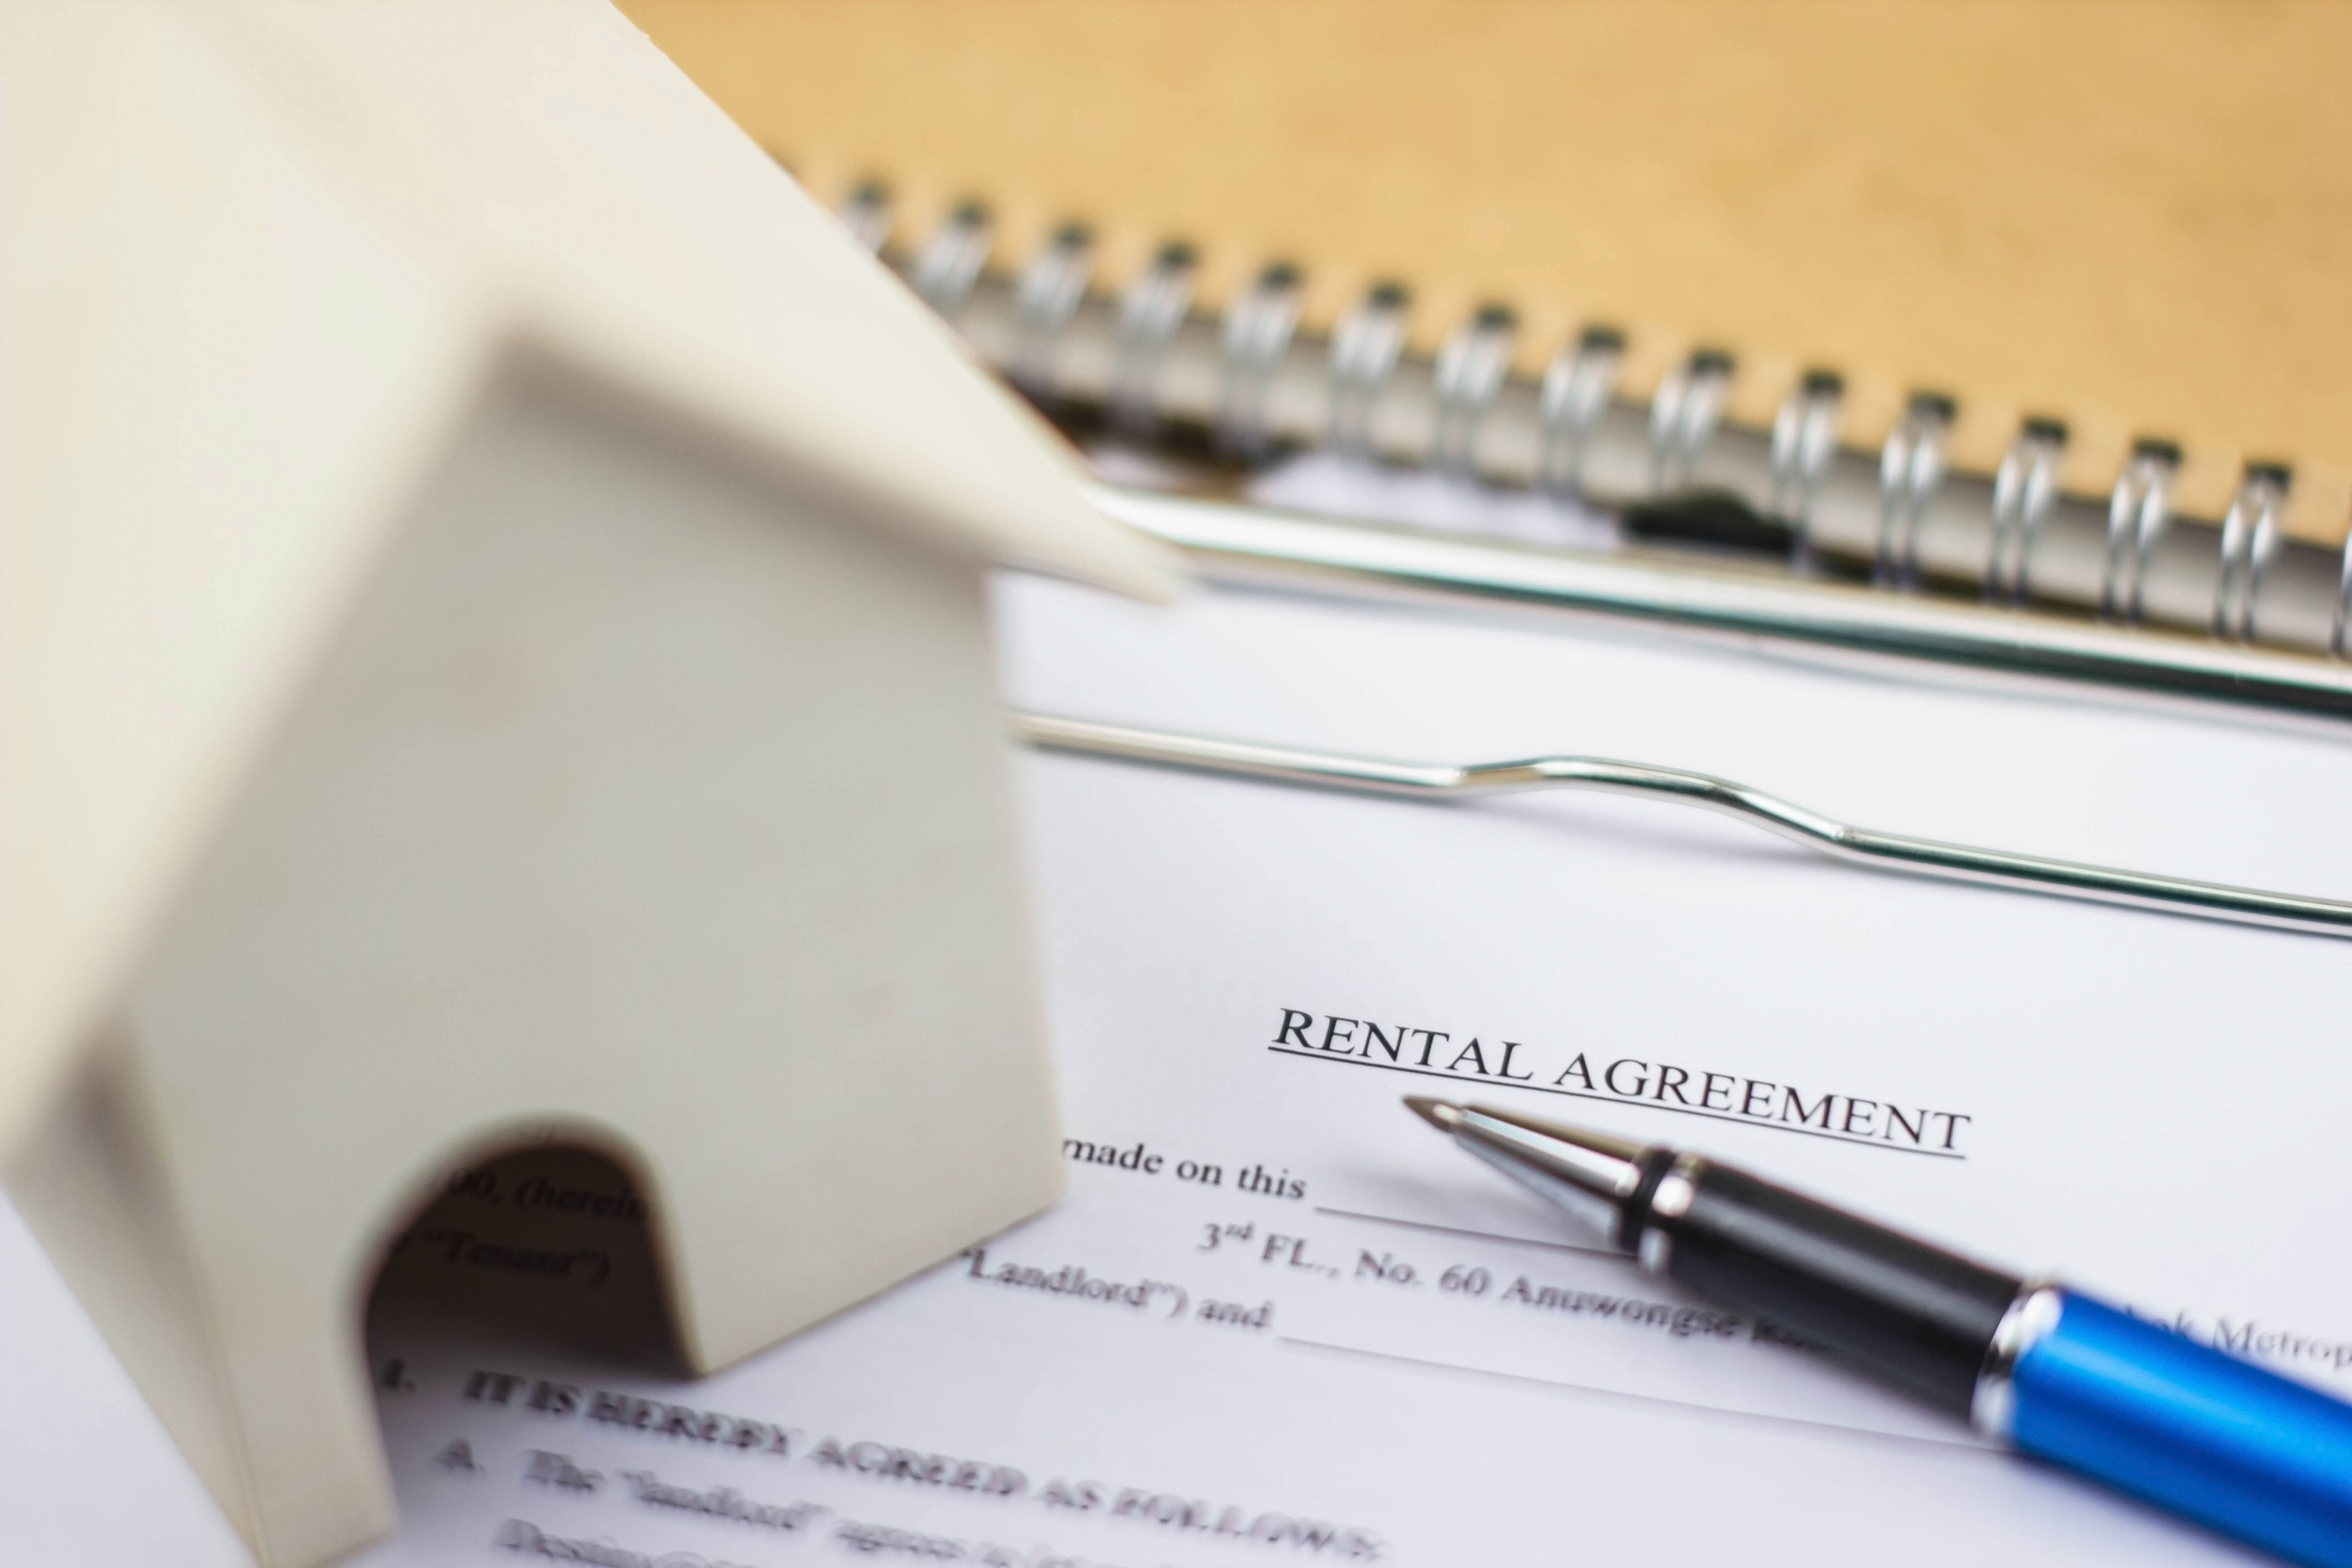 A rental agreement underneath a house model contains terms of living and rental cost at a Build To Rent property.